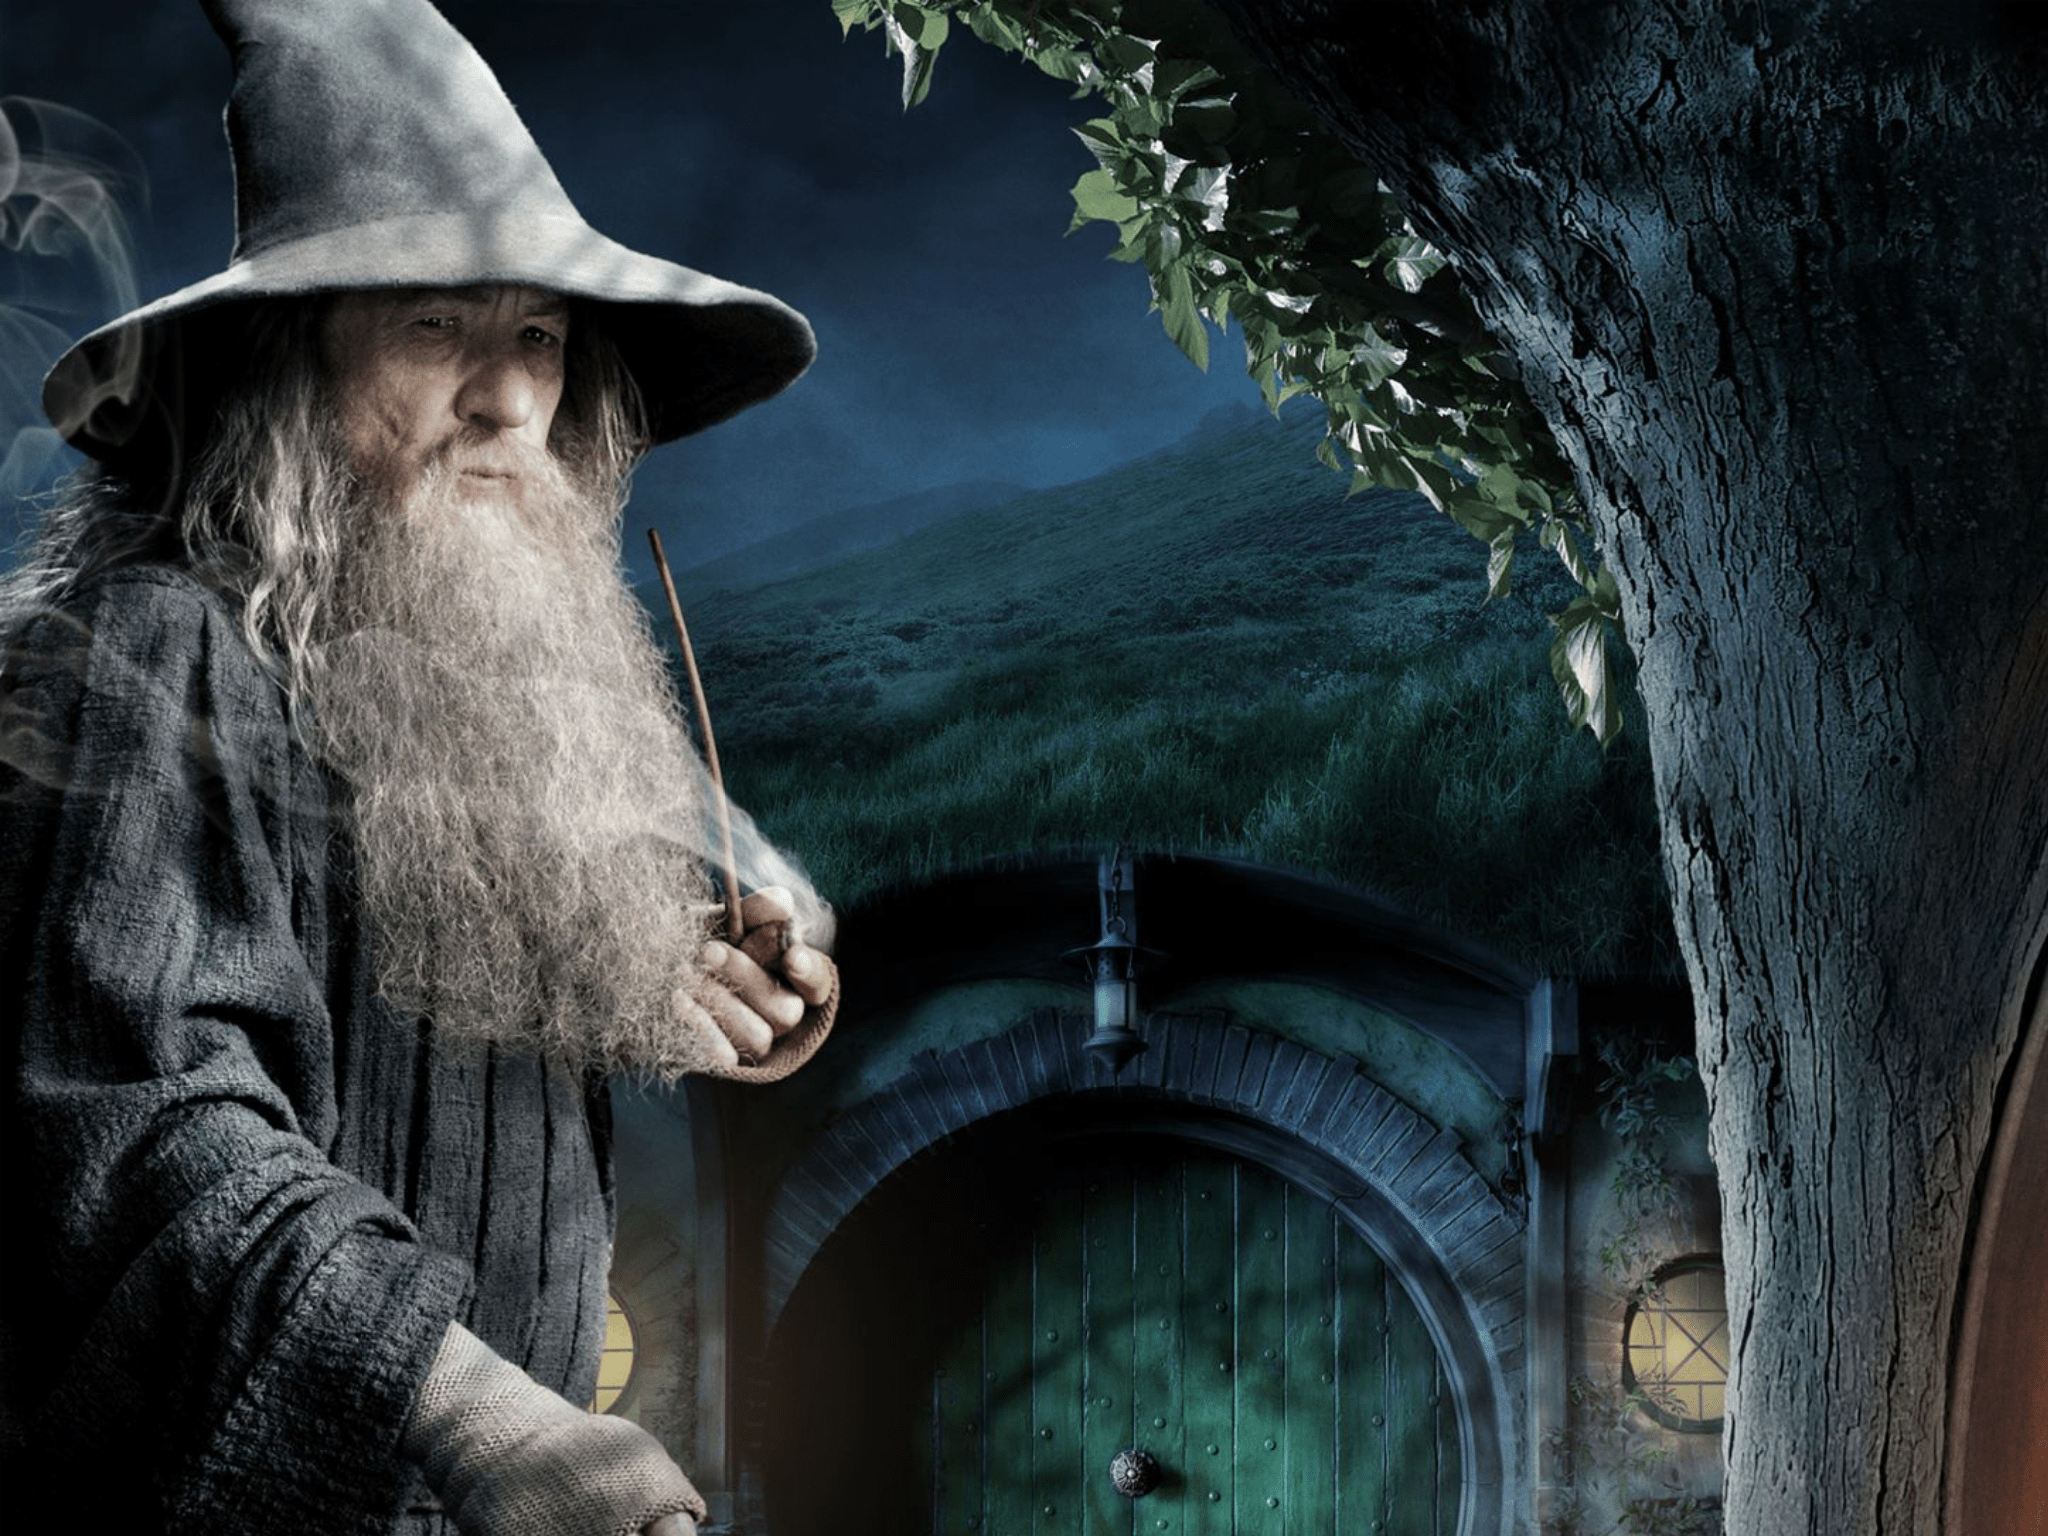 Gandalf shows up at Bilbo Baggins house at Bag End unexpectedly, tricking him into hosting a feast for 13 dwarves.